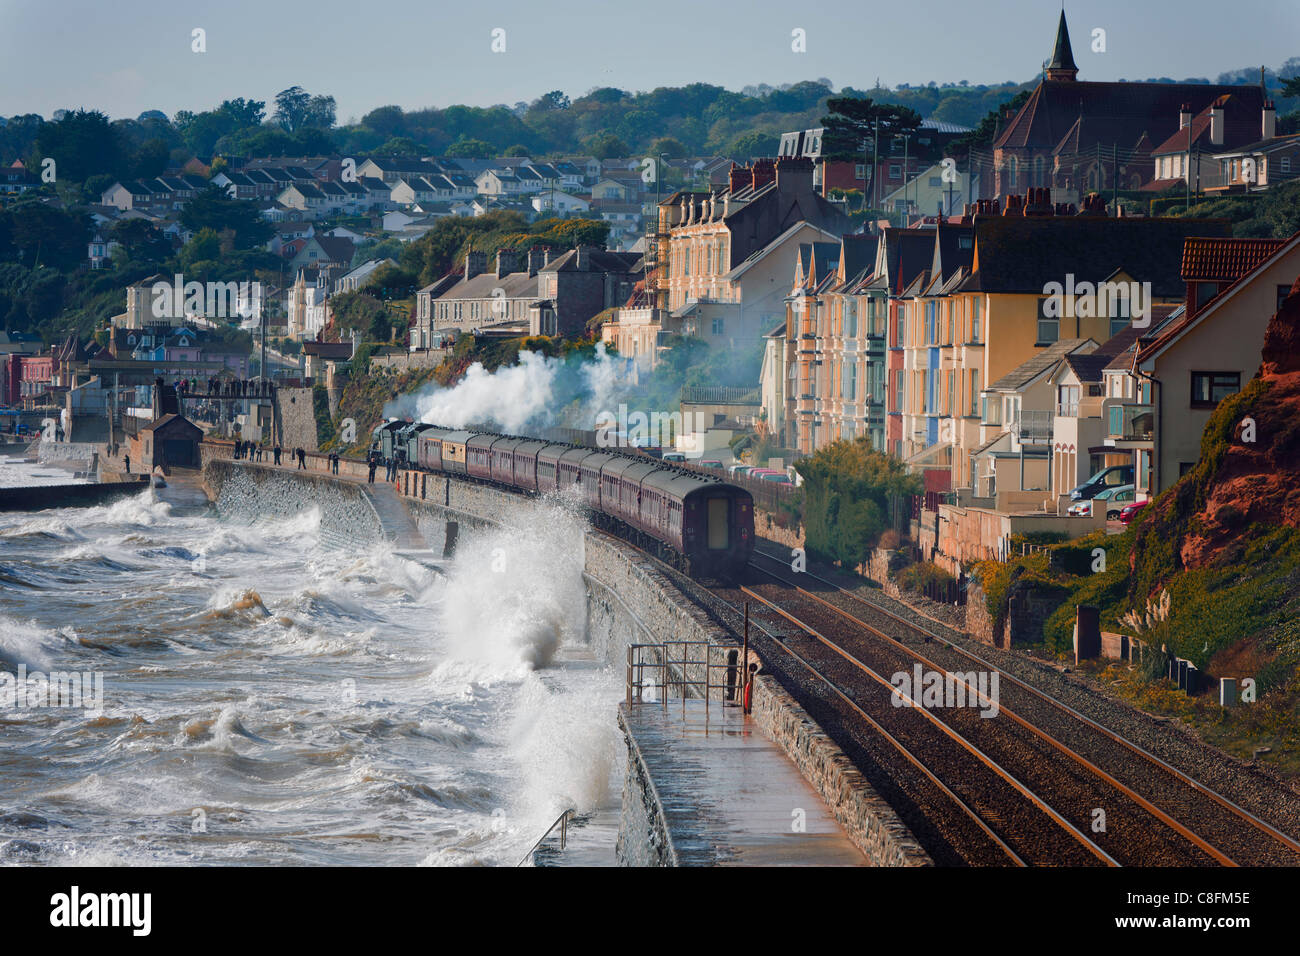 The Devonian double headed by steam locomotives 6024 King Edward I and 70013 Oliver Cromwell approaches Dawlish - Stock Image